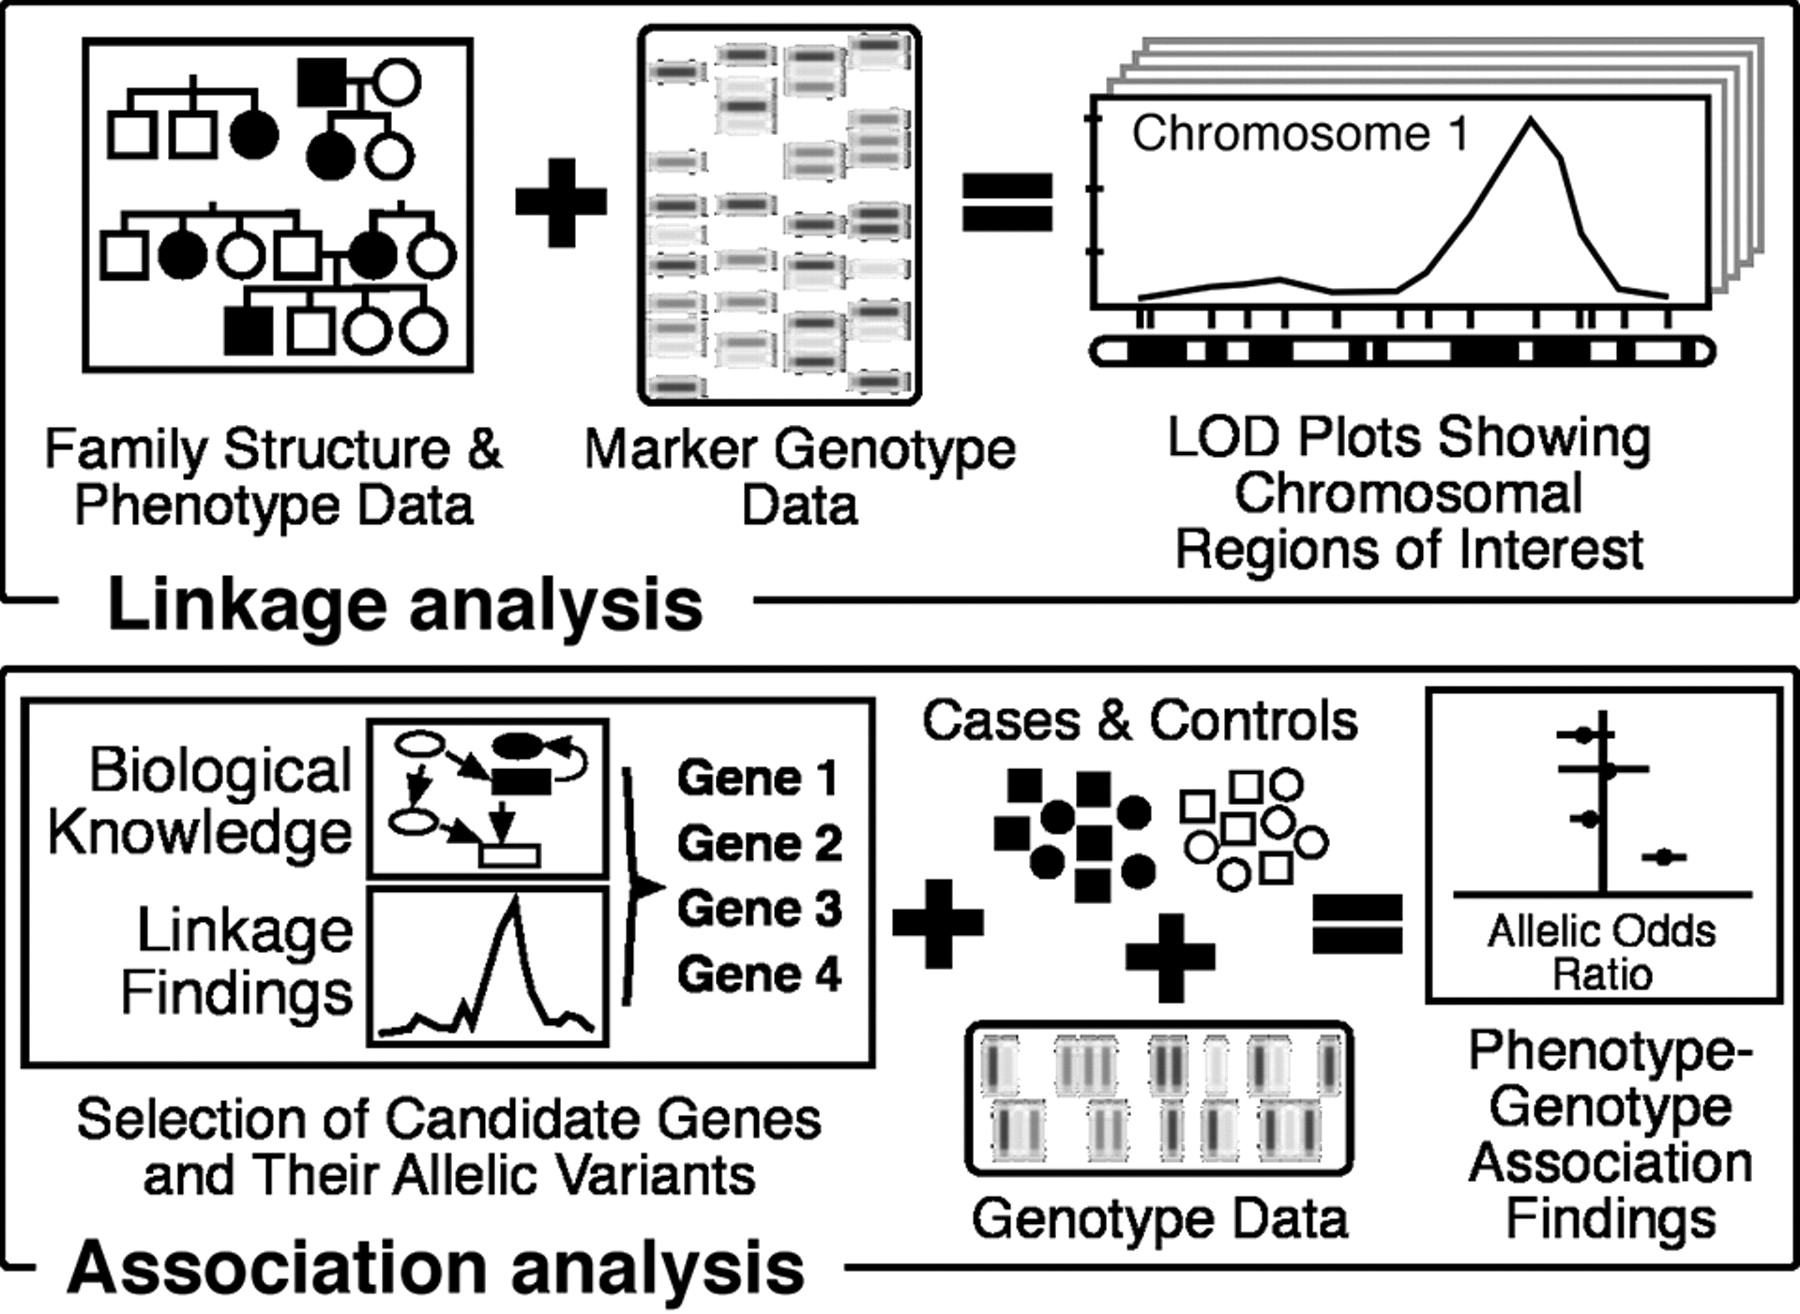 Summary Of The American Heart Association S Scientific Statement On The Relevance Of Genetics And Genomics For Prevention And Treatment Of Cardiovascular Disease Arteriosclerosis Thrombosis And Vascular Biology